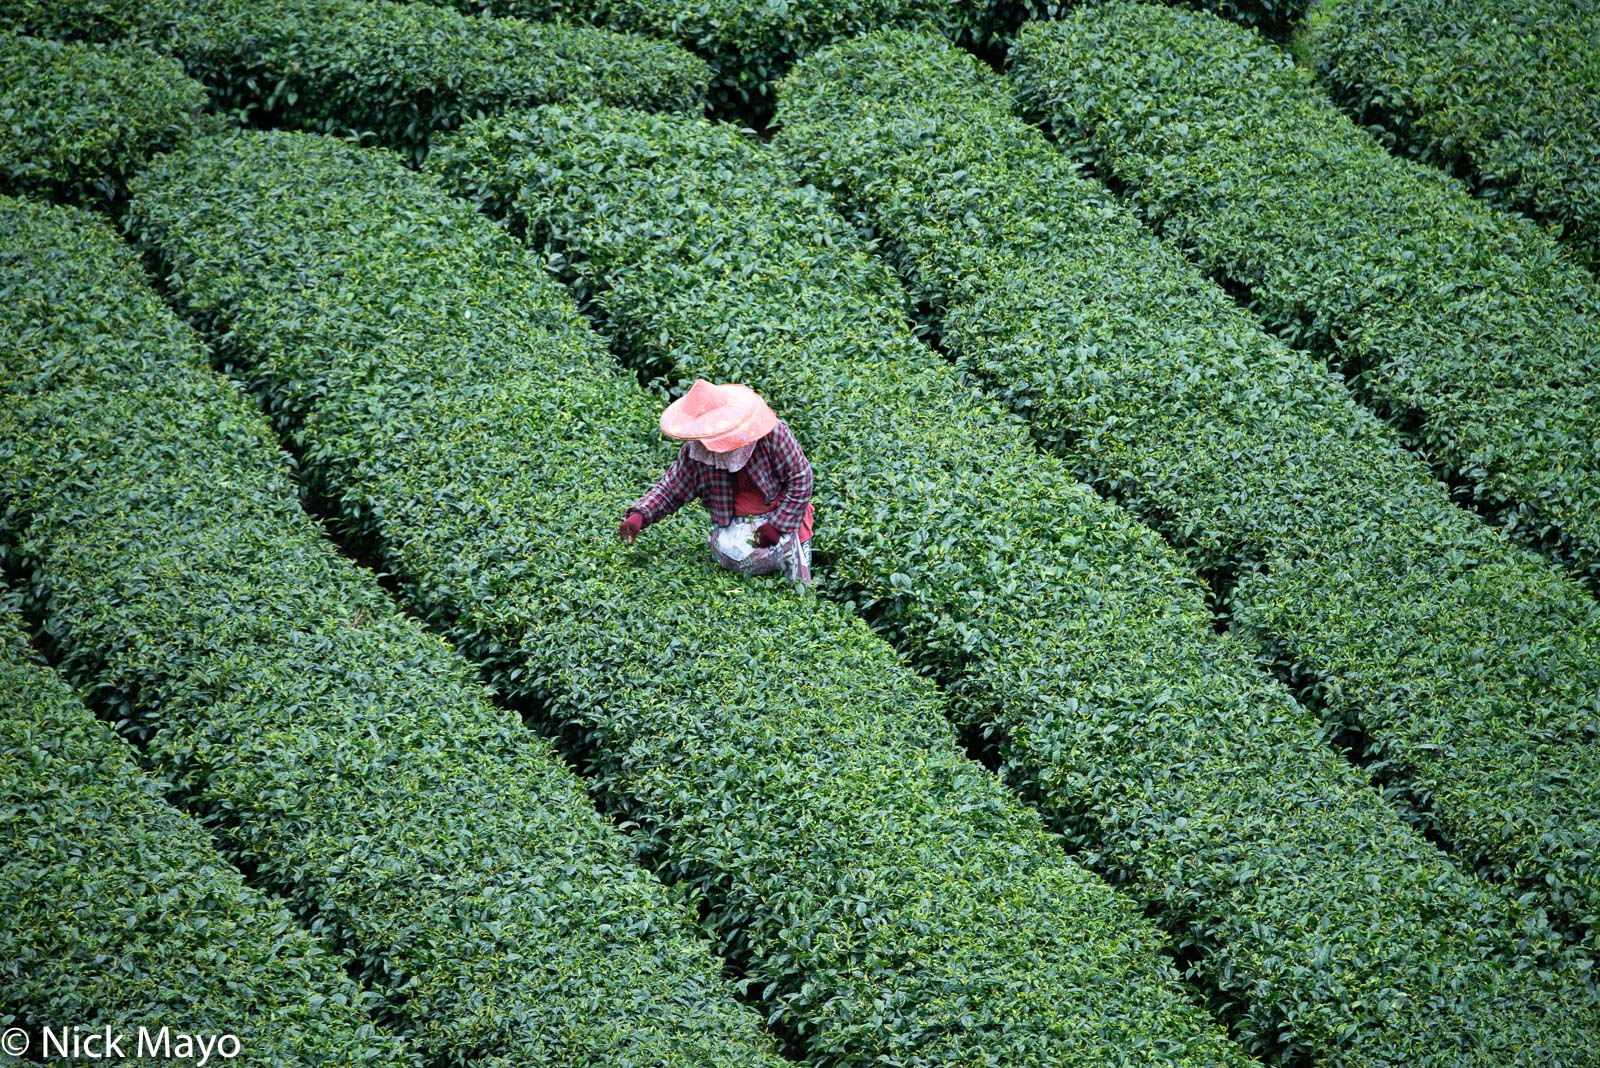 A tea picker harvesting in a tea field at Xiding in Chaiyi County.